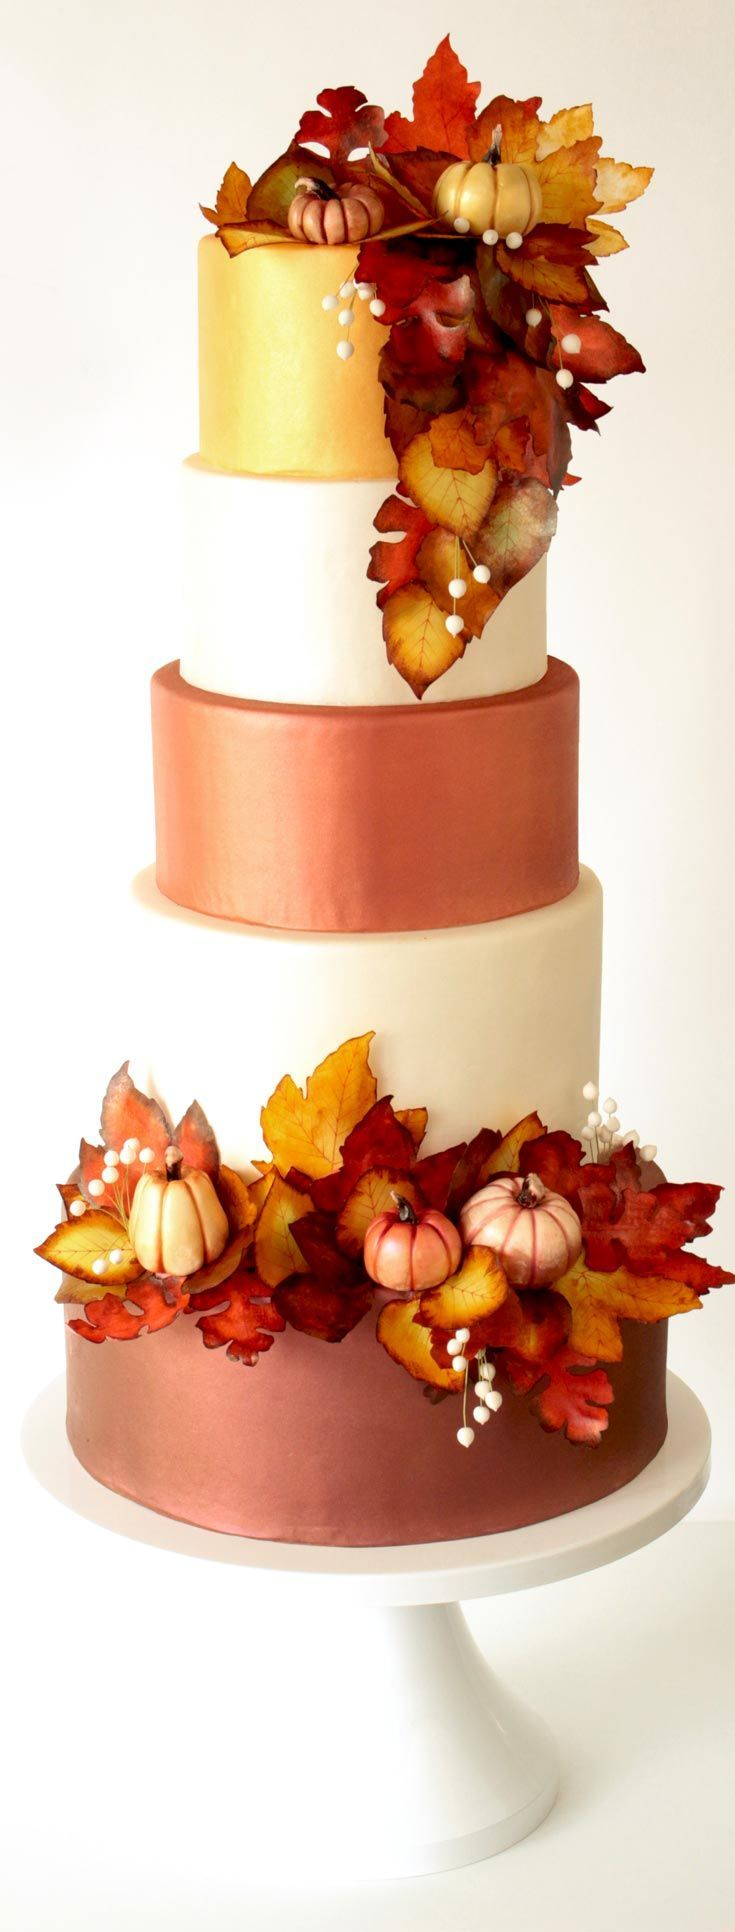 Learn to Make This Fall Wedding Cake and Decor! Couture